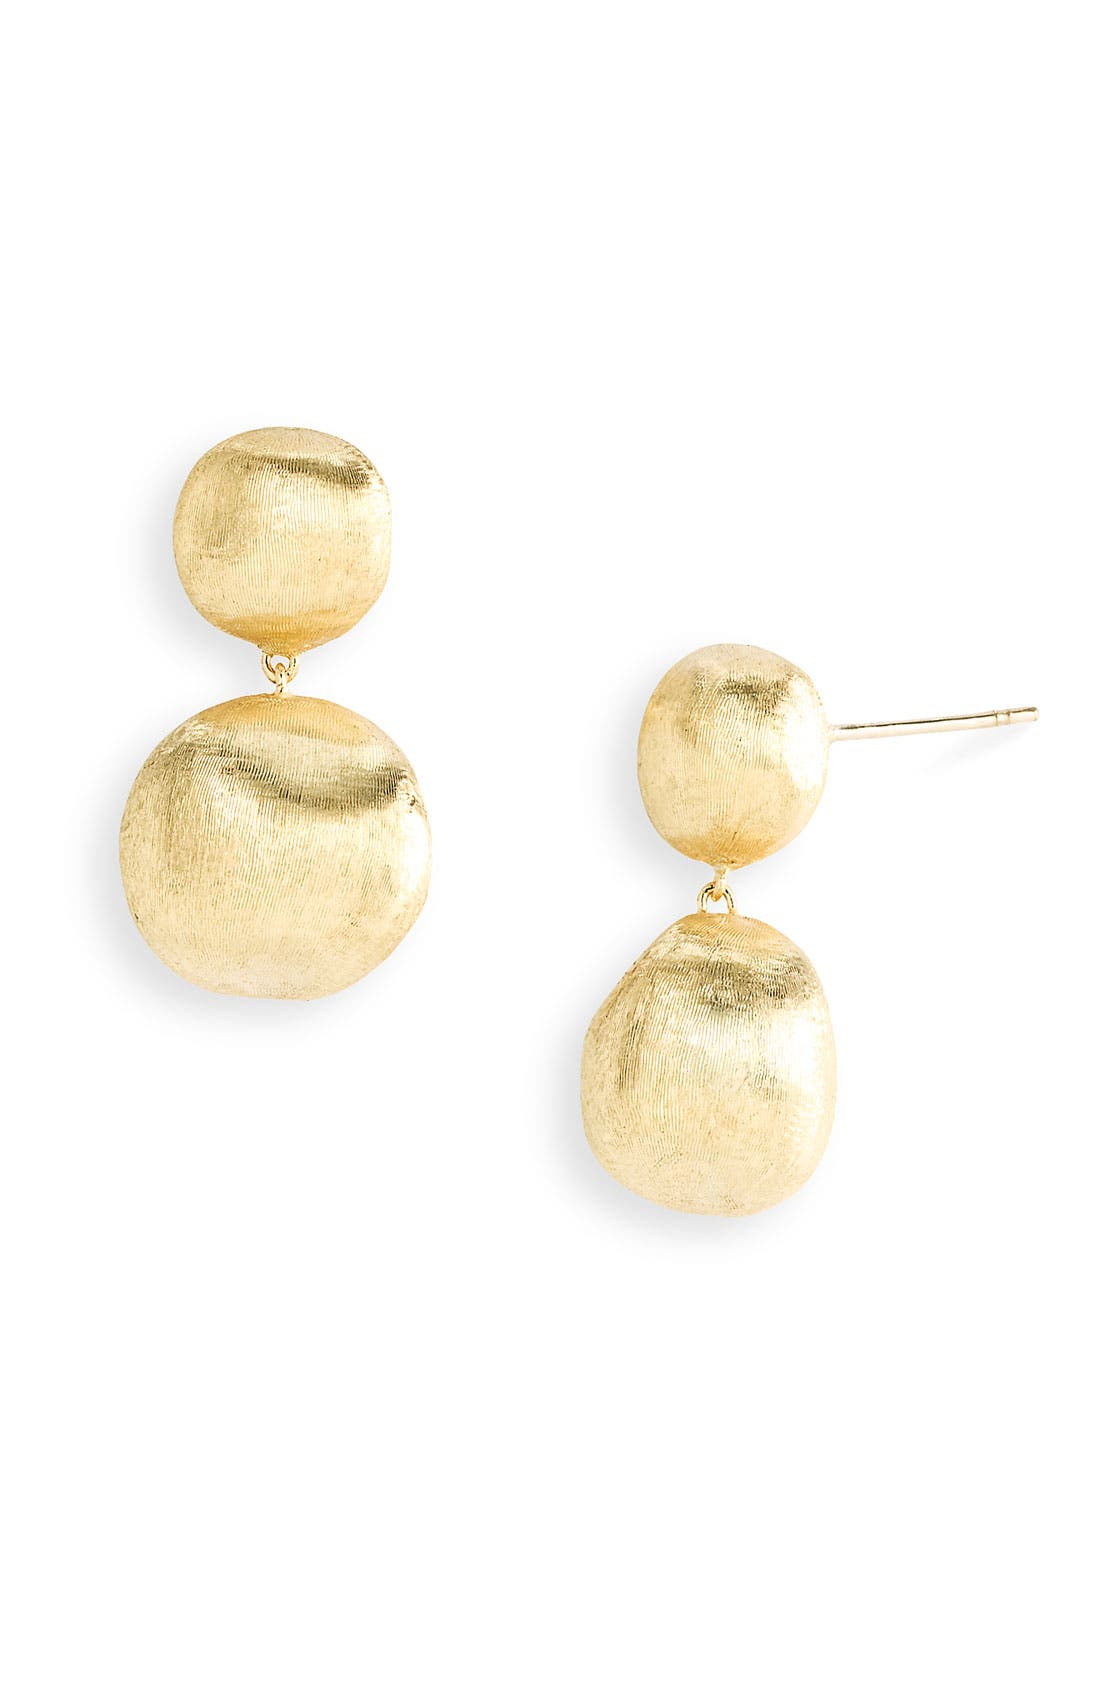 Marco Bicego 'Africa Gold' Double Drop Earrings